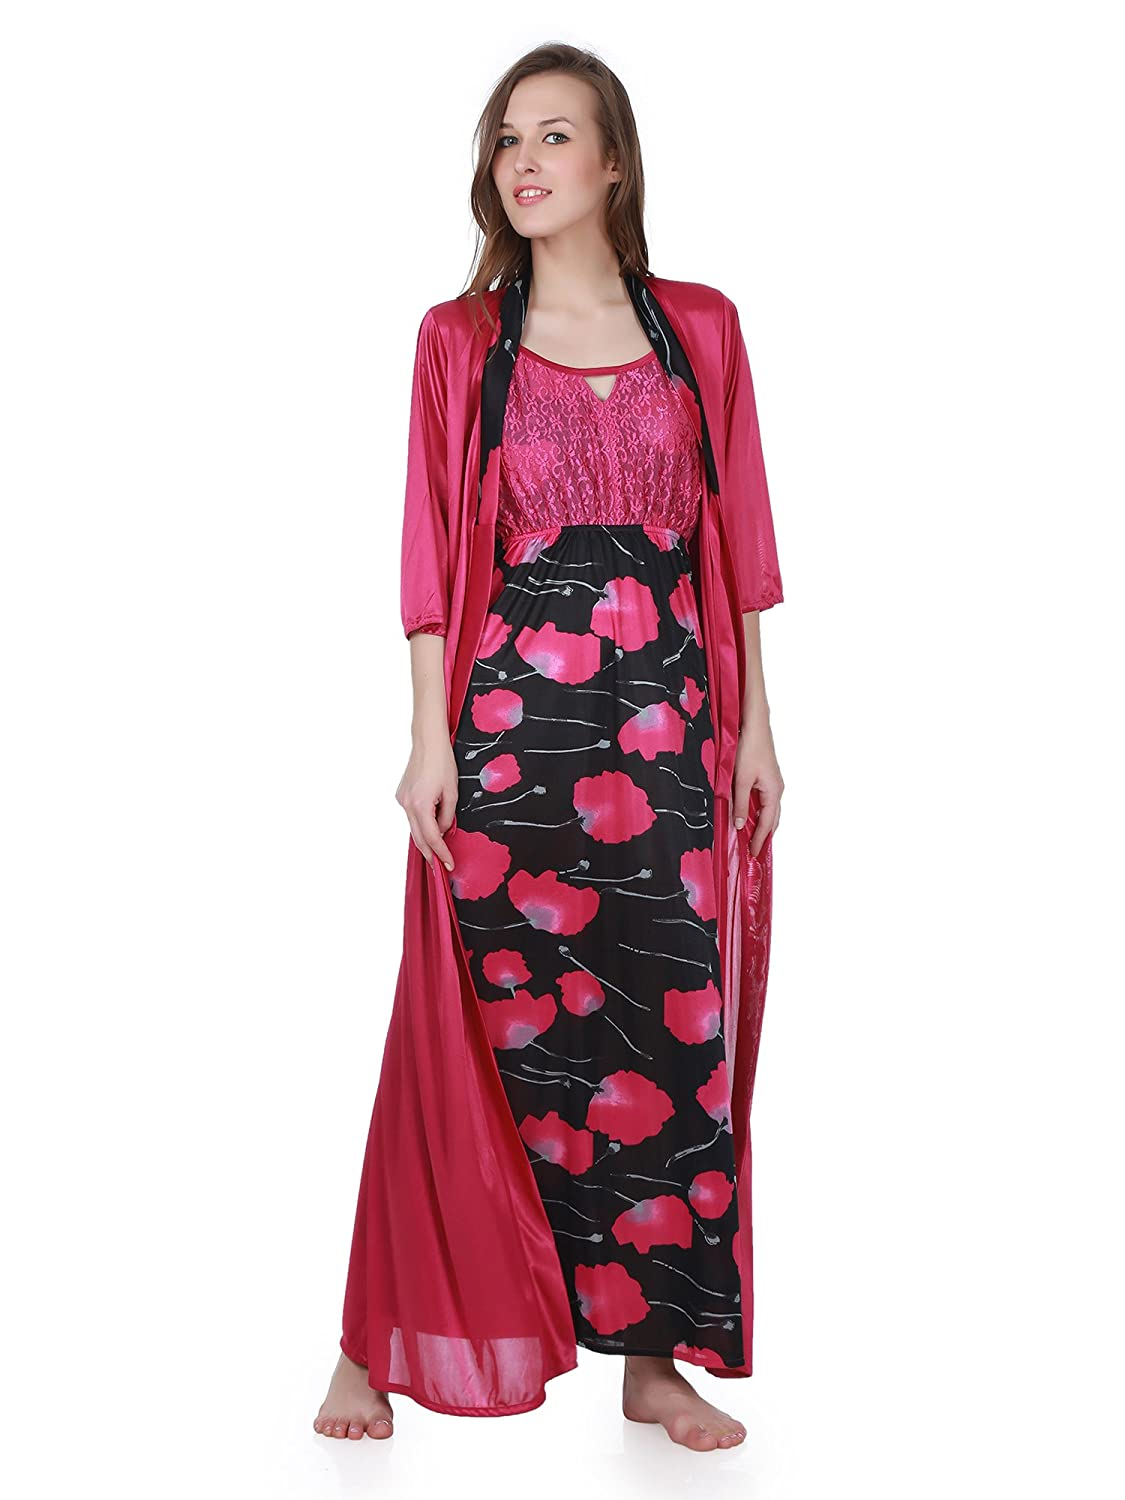 5edcc8238f Claura 3 pc stylish combo of Printed Long Nighty with robe and shorts nighty(cl-20-pi+cl-29-wine)   Amazon.in  Clothing   Accessories